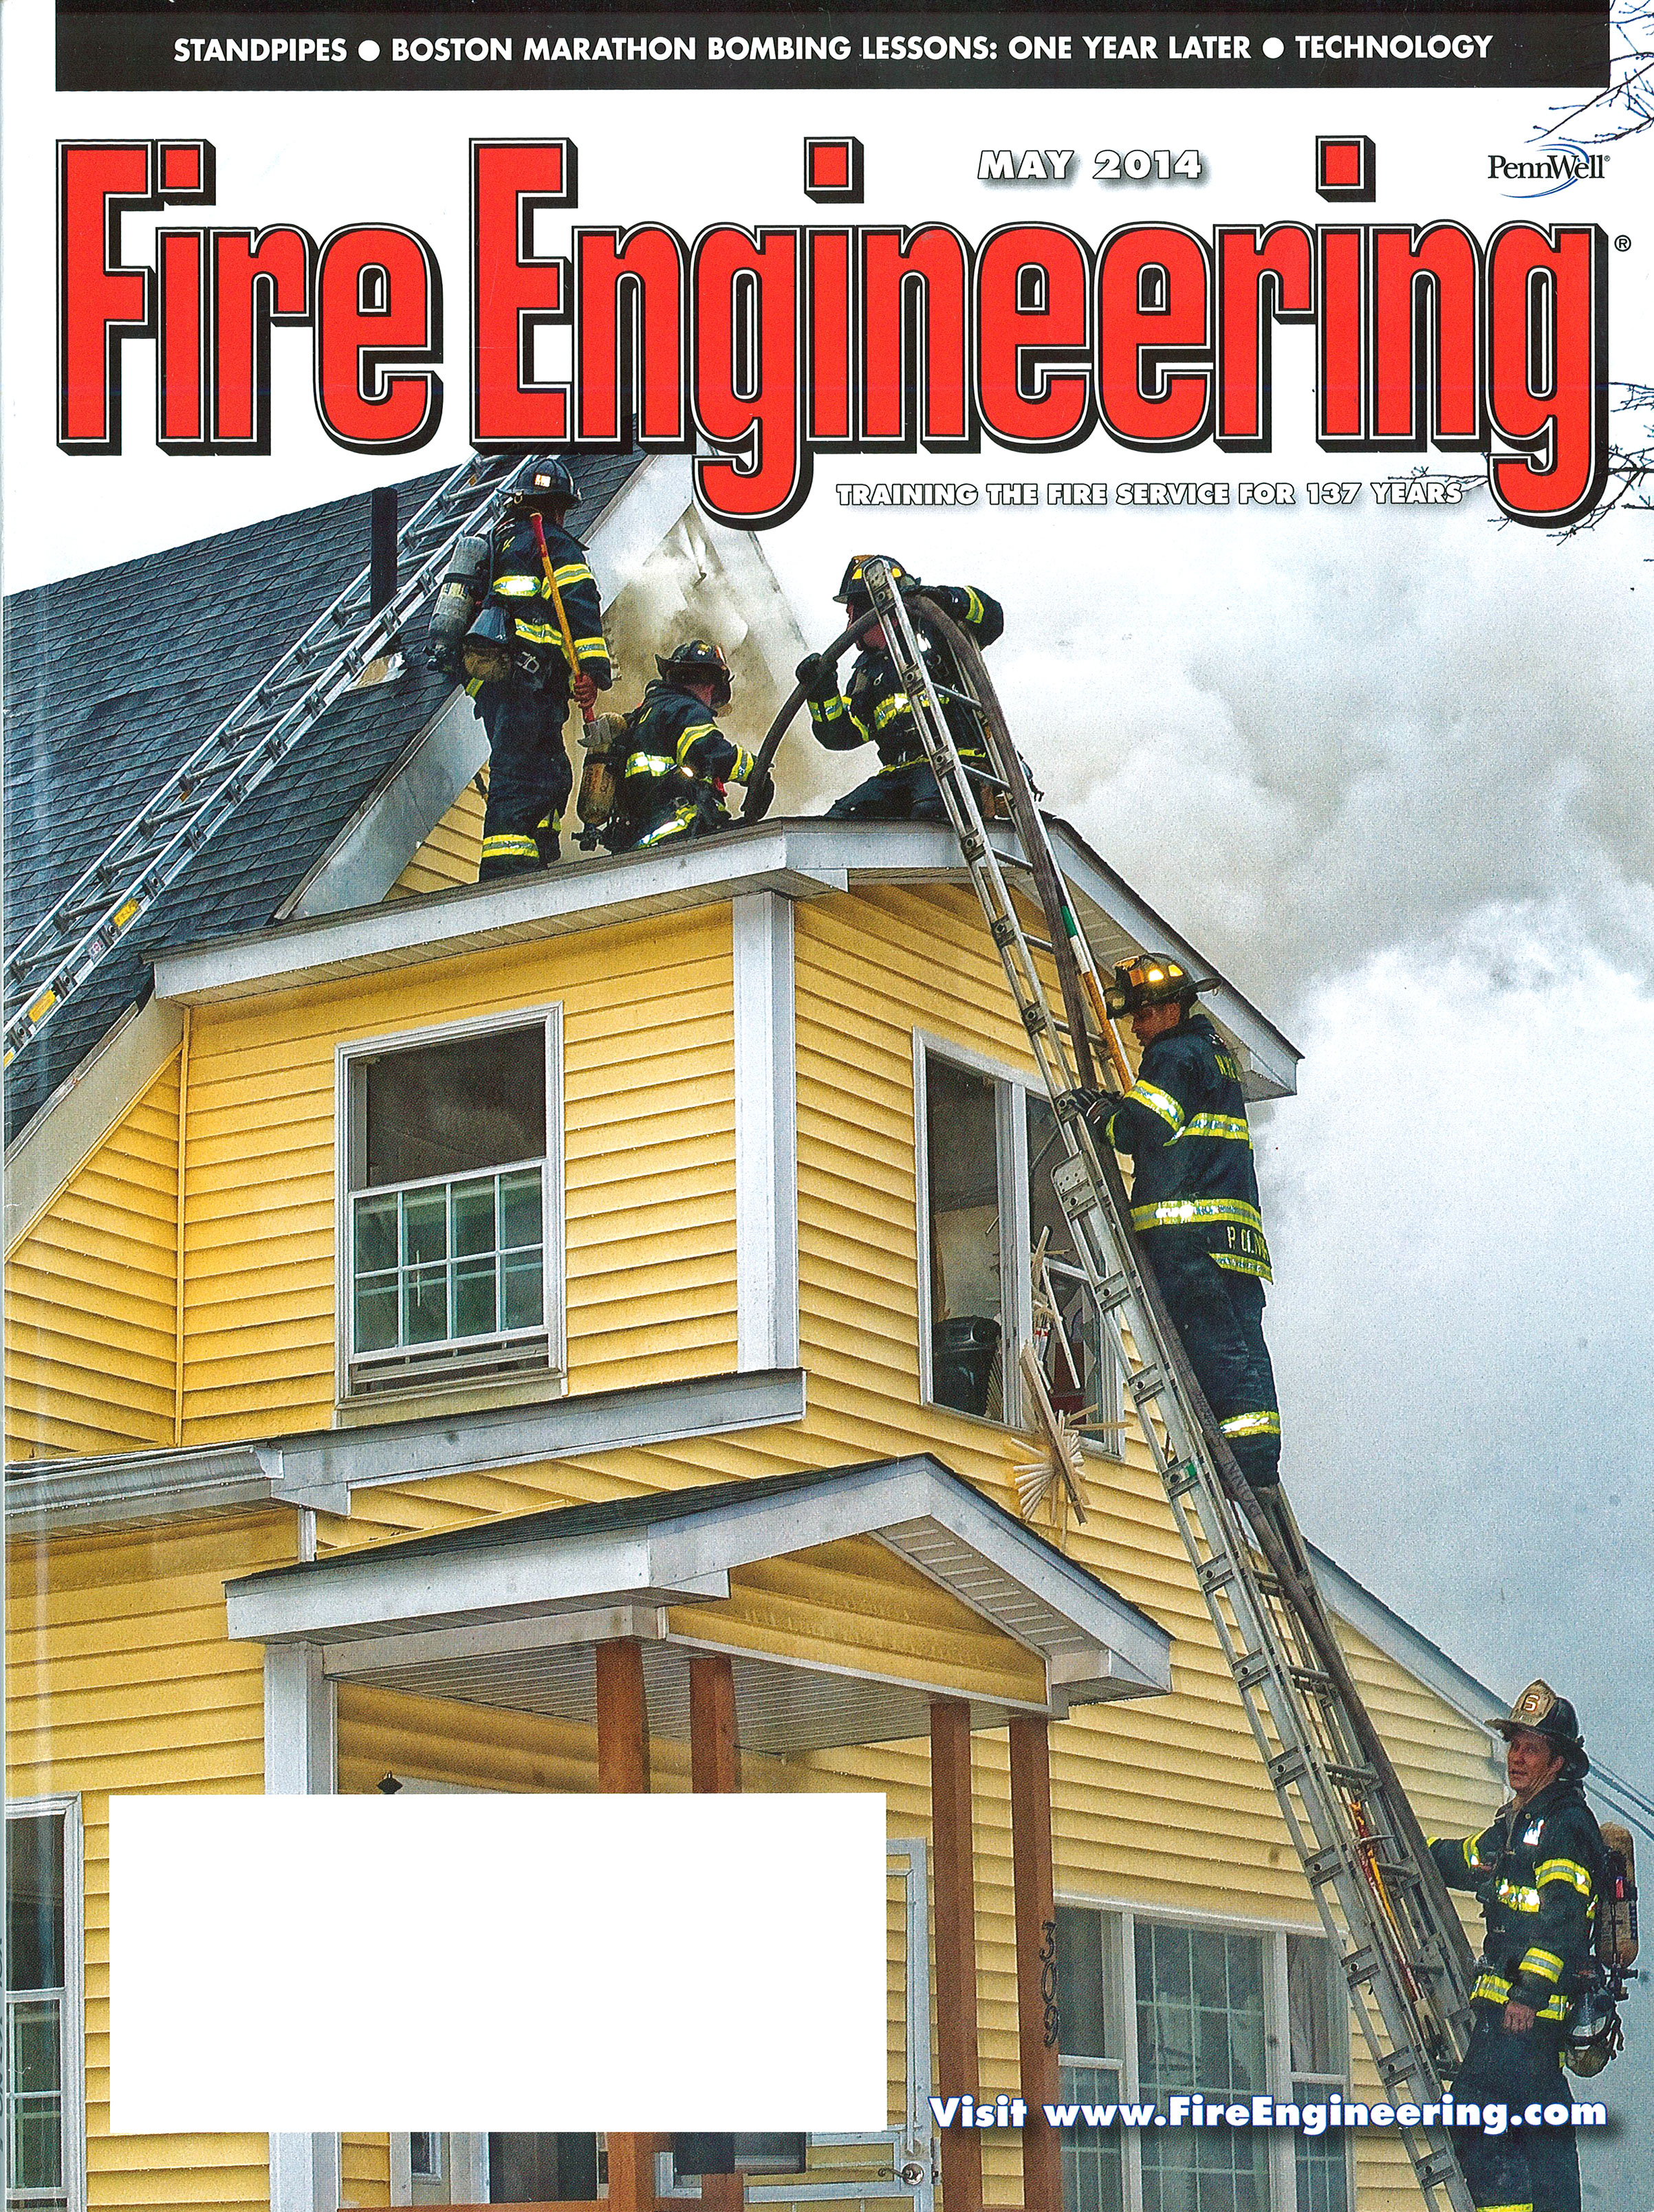 Tulsa Ok News >> Fire Engineering Magazine Partners with Russell Johns to Launch an Online Career Center for Fire ...